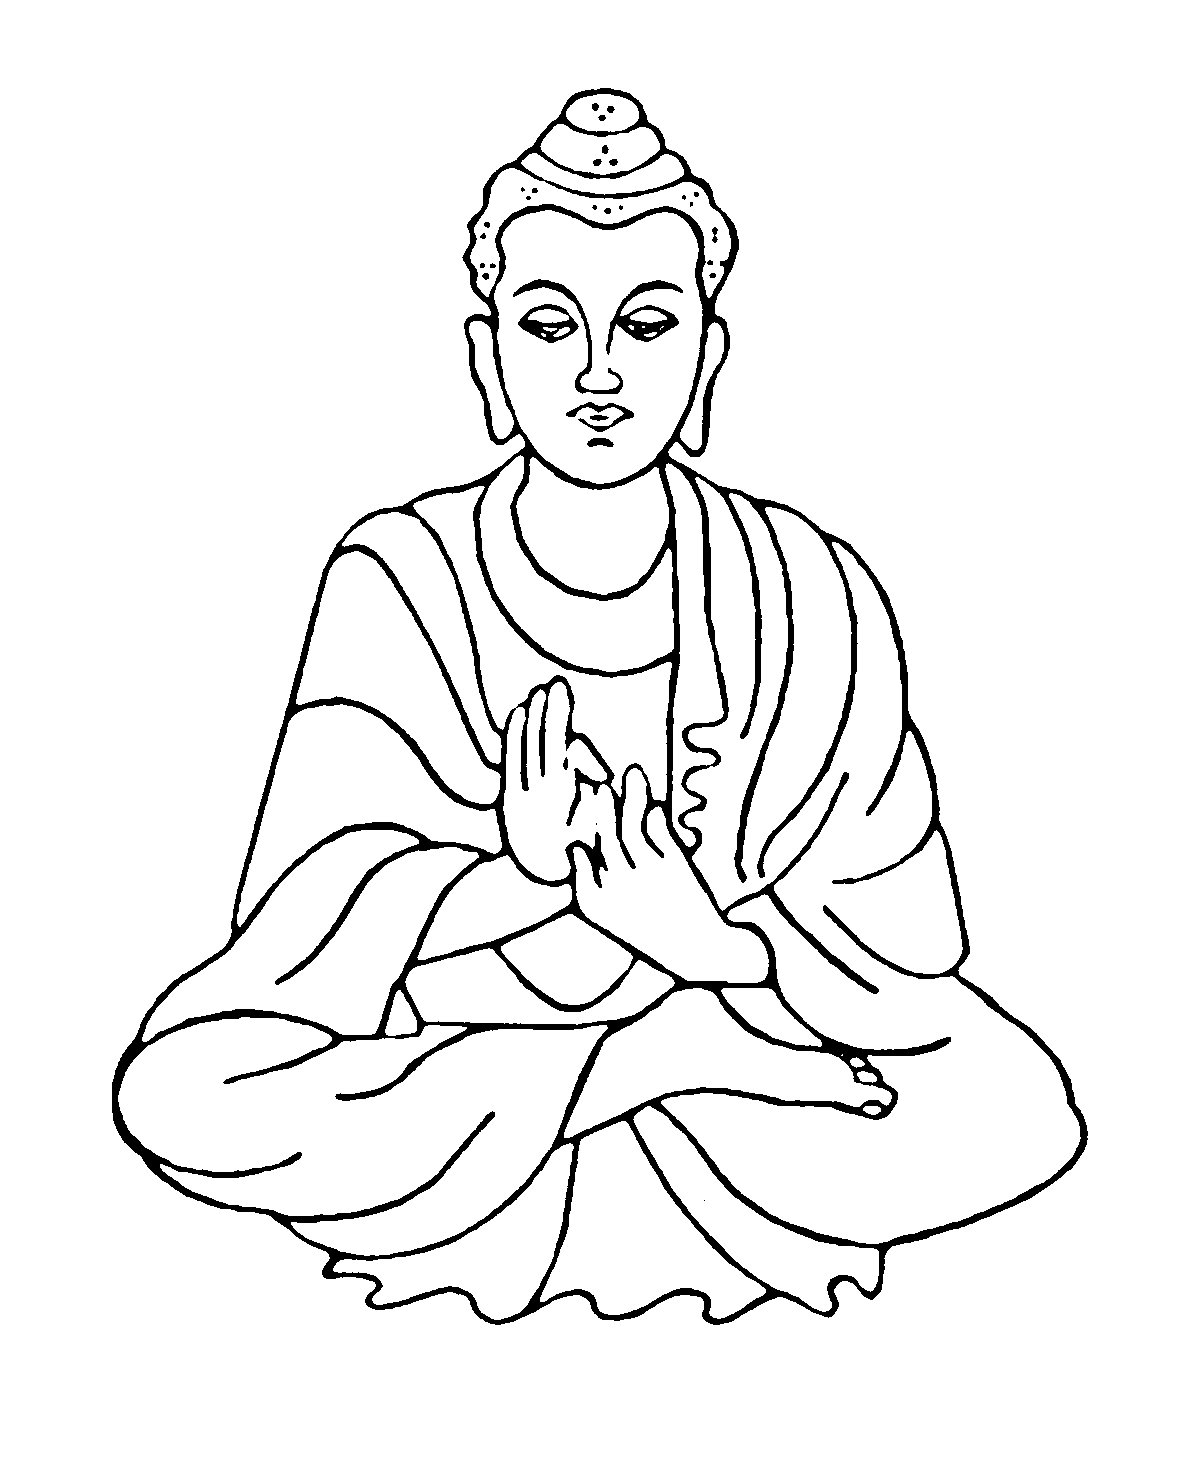 Buddha clipart Beautiful Buddha clipart Pencil and in color buddha.